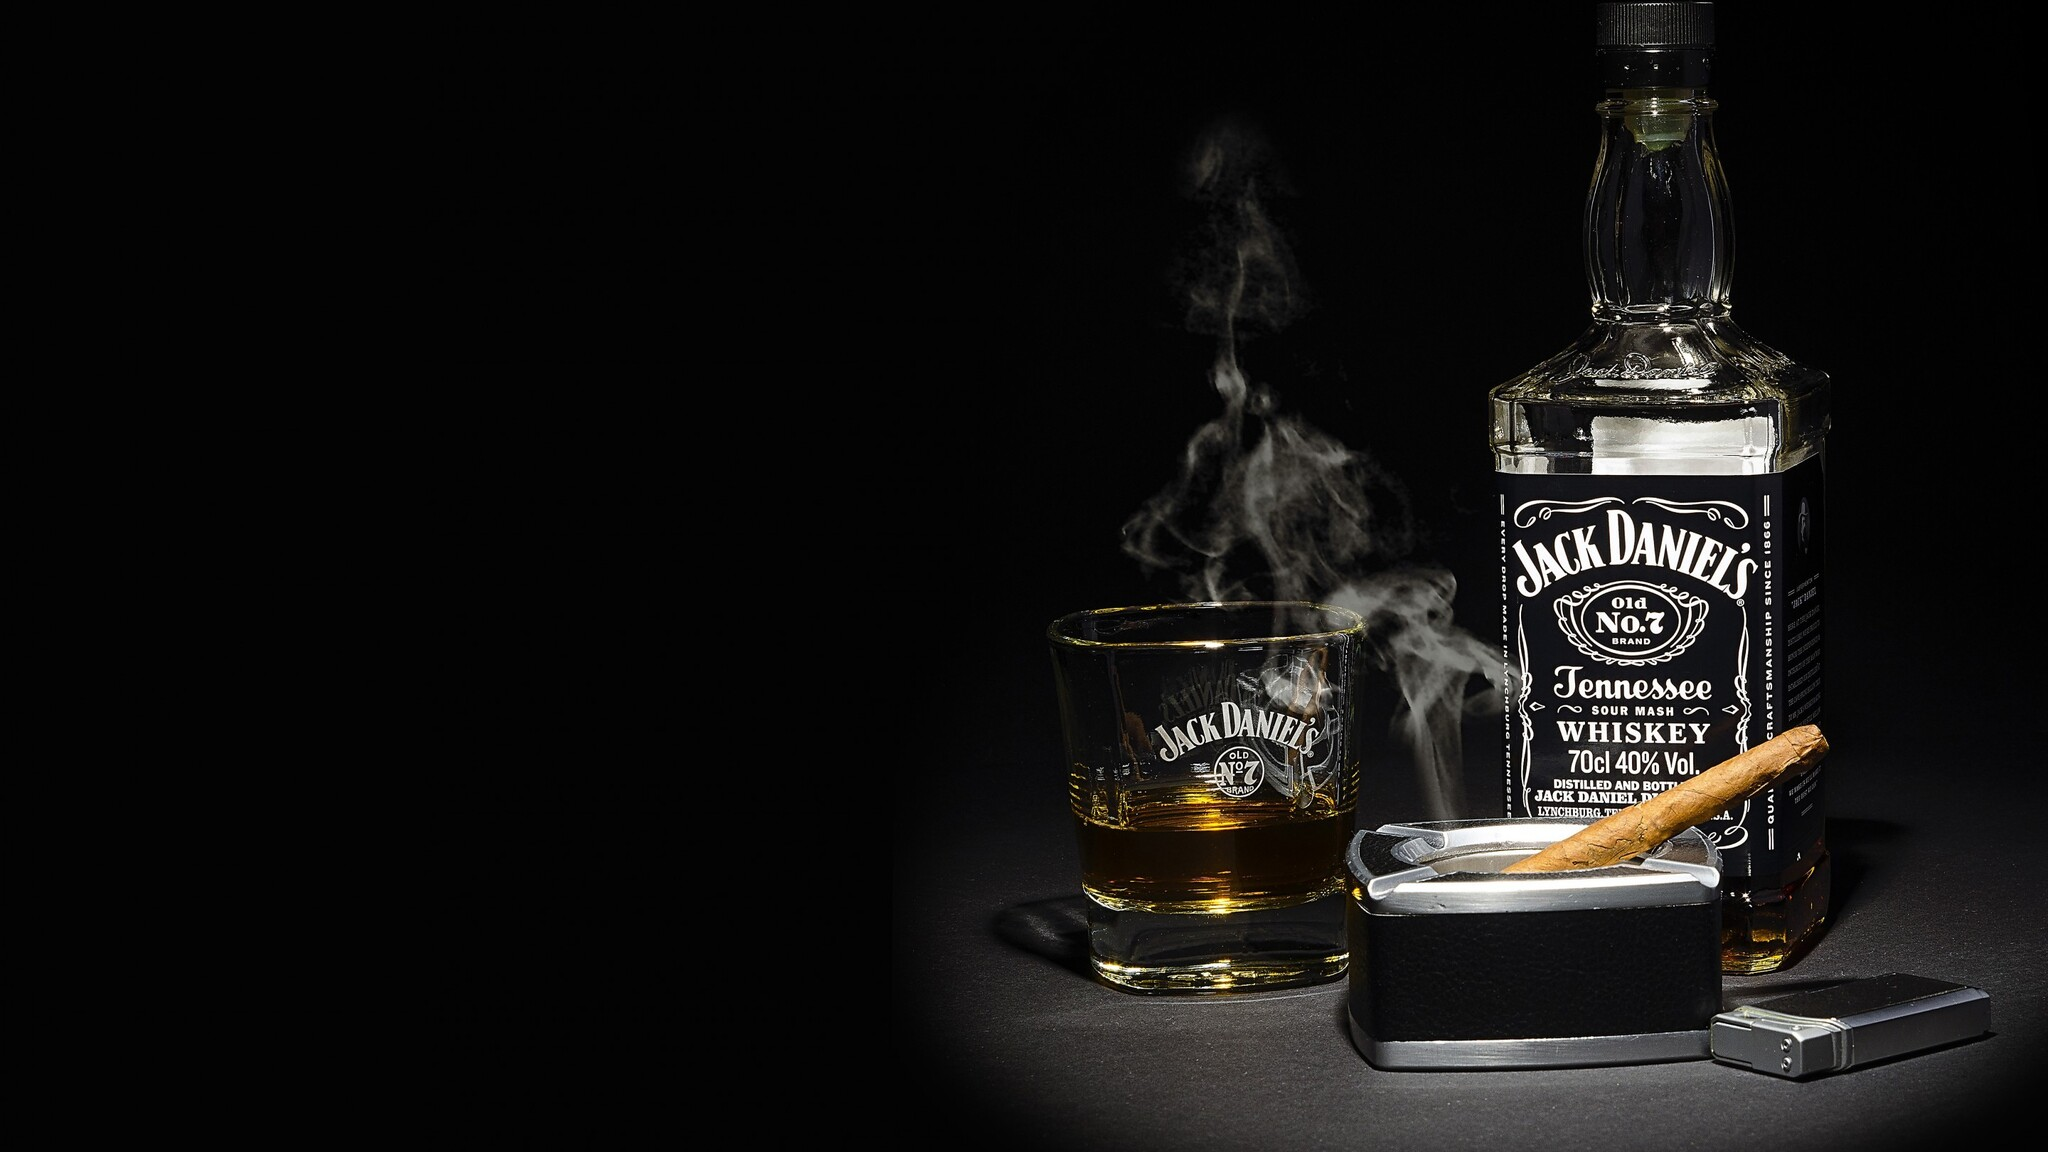 Whisky Full Hd Wallpaper And Background: 2048x1152 Jack Daniels Whiskey 2048x1152 Resolution HD 4k